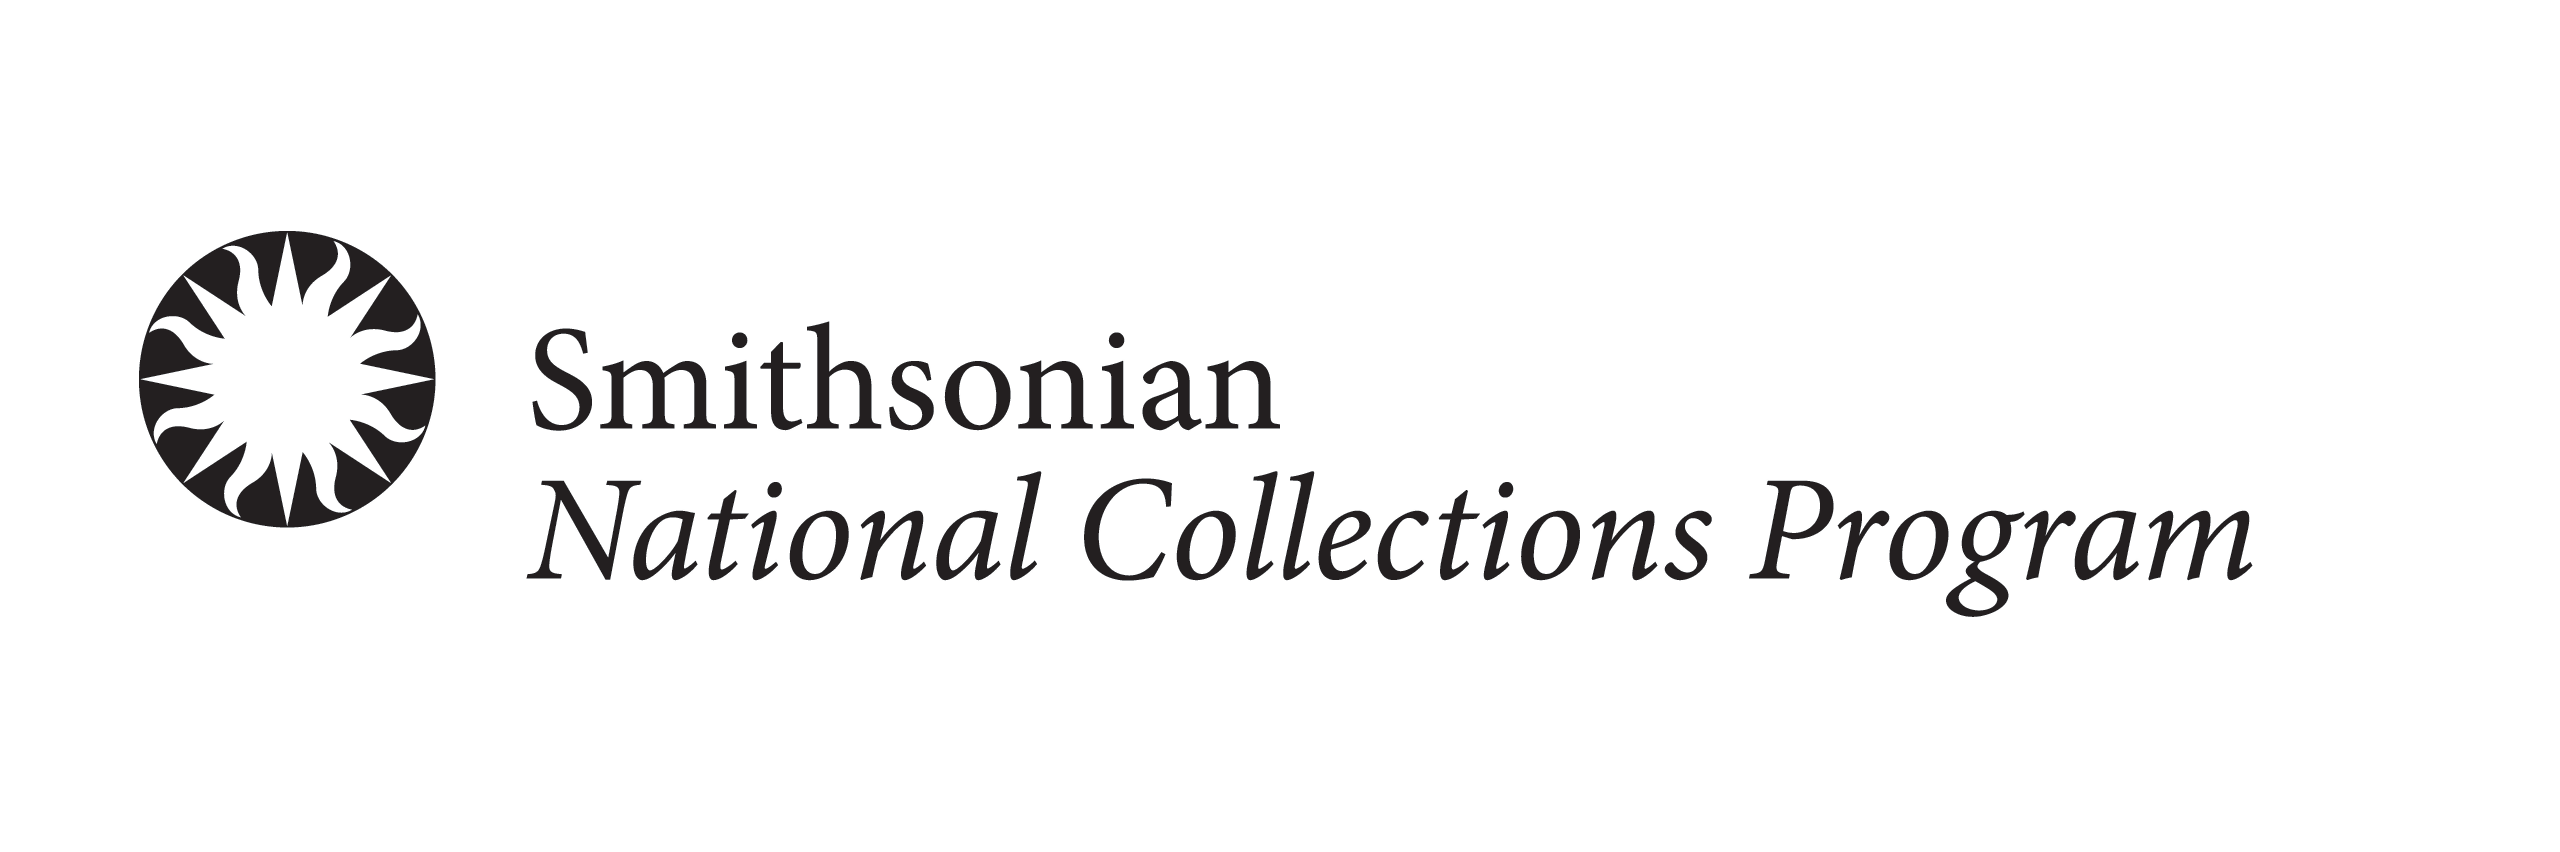 National Collections Program